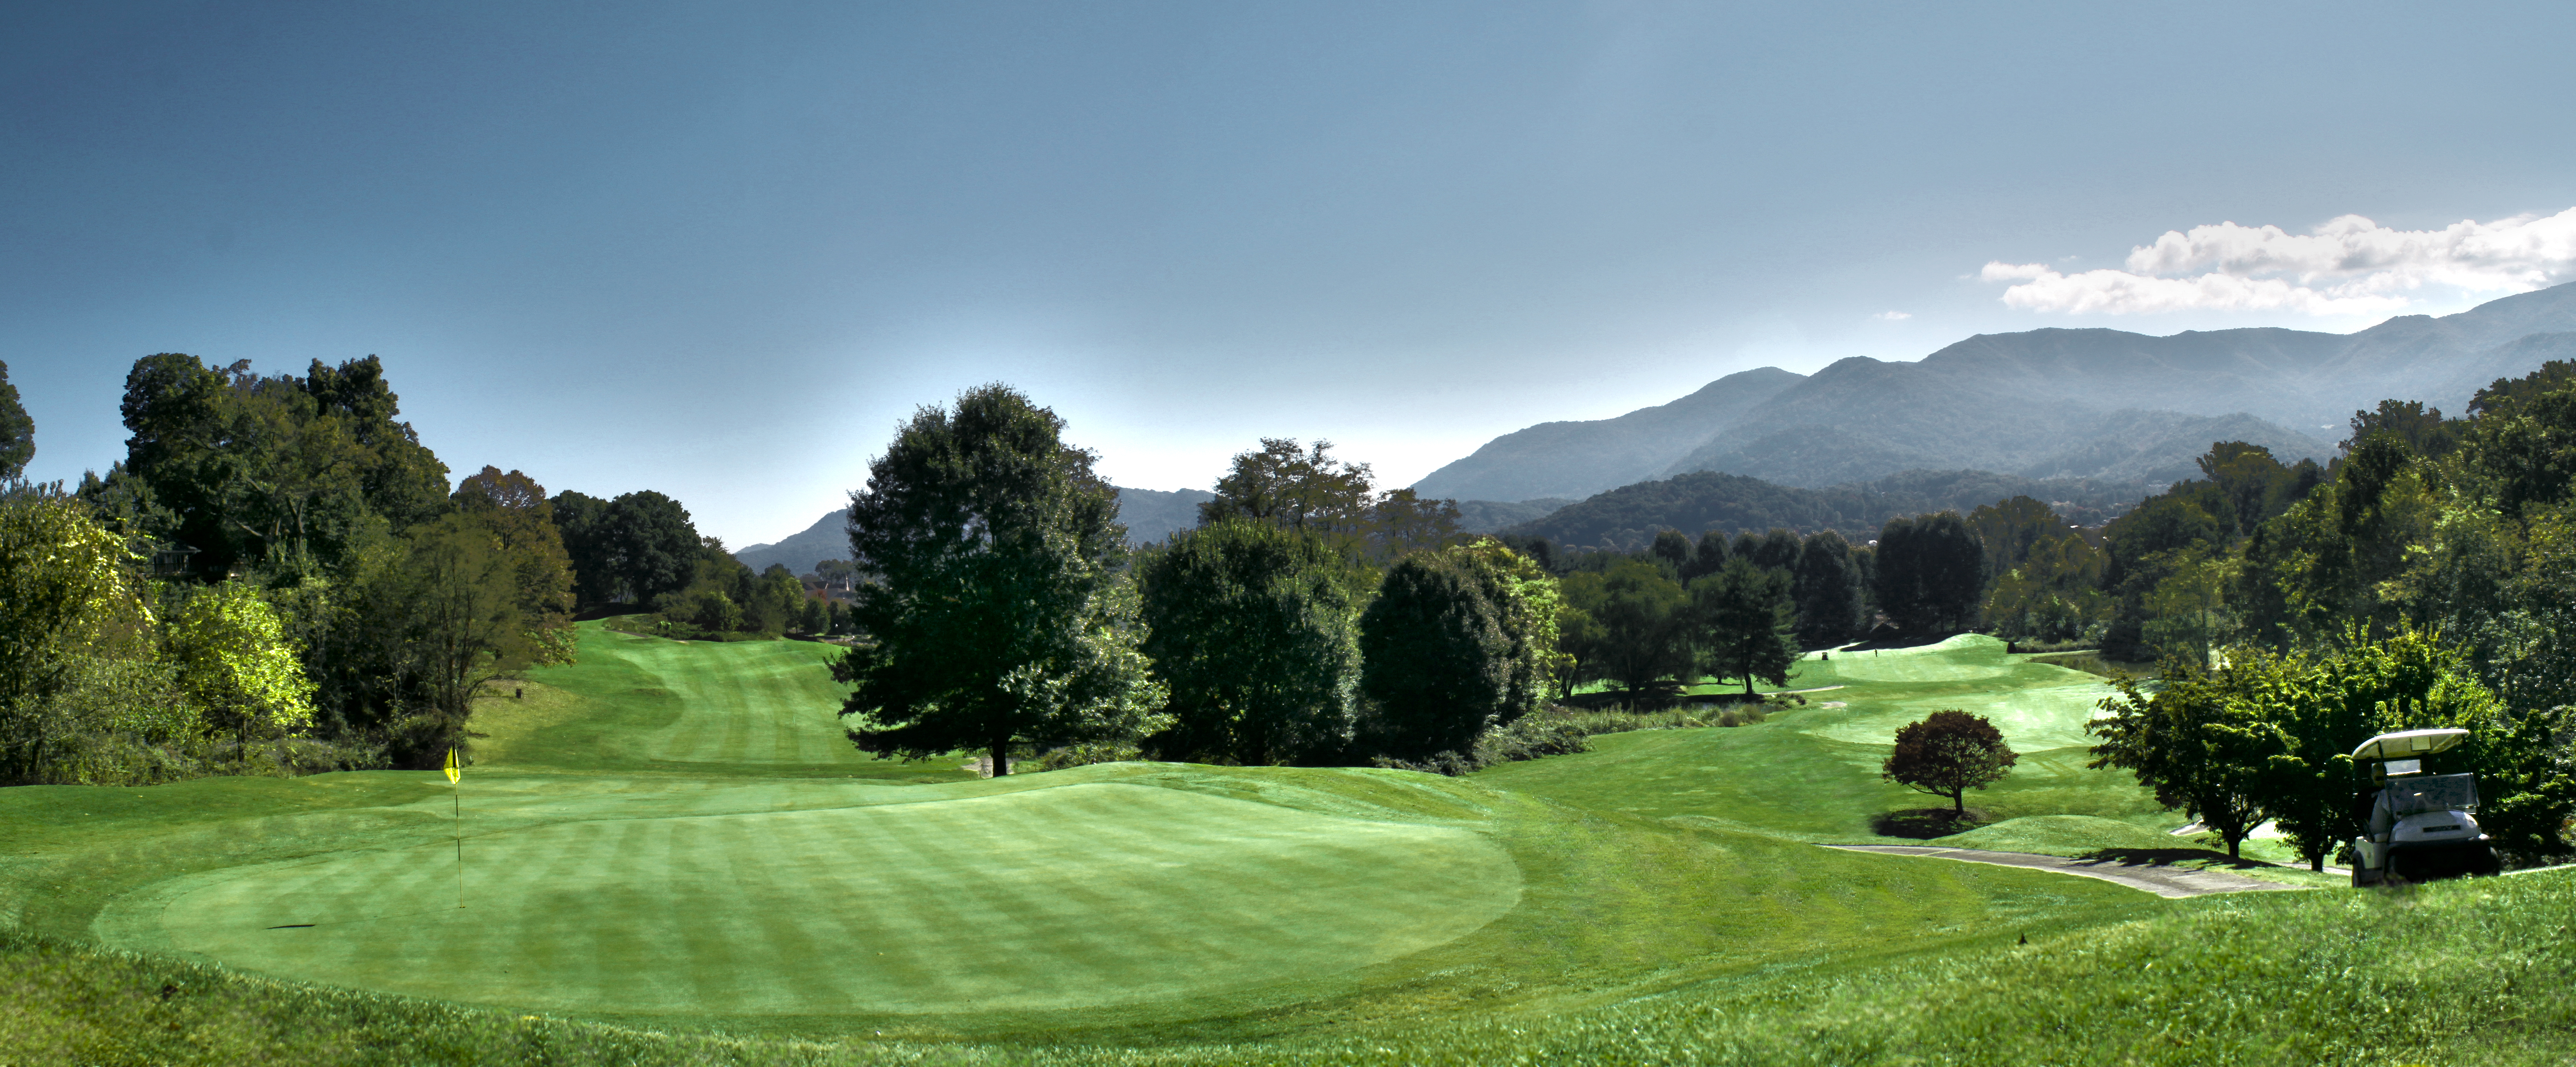 Laurel ridge country club and event center footer1 local flavor avl visit explore recreation asheville